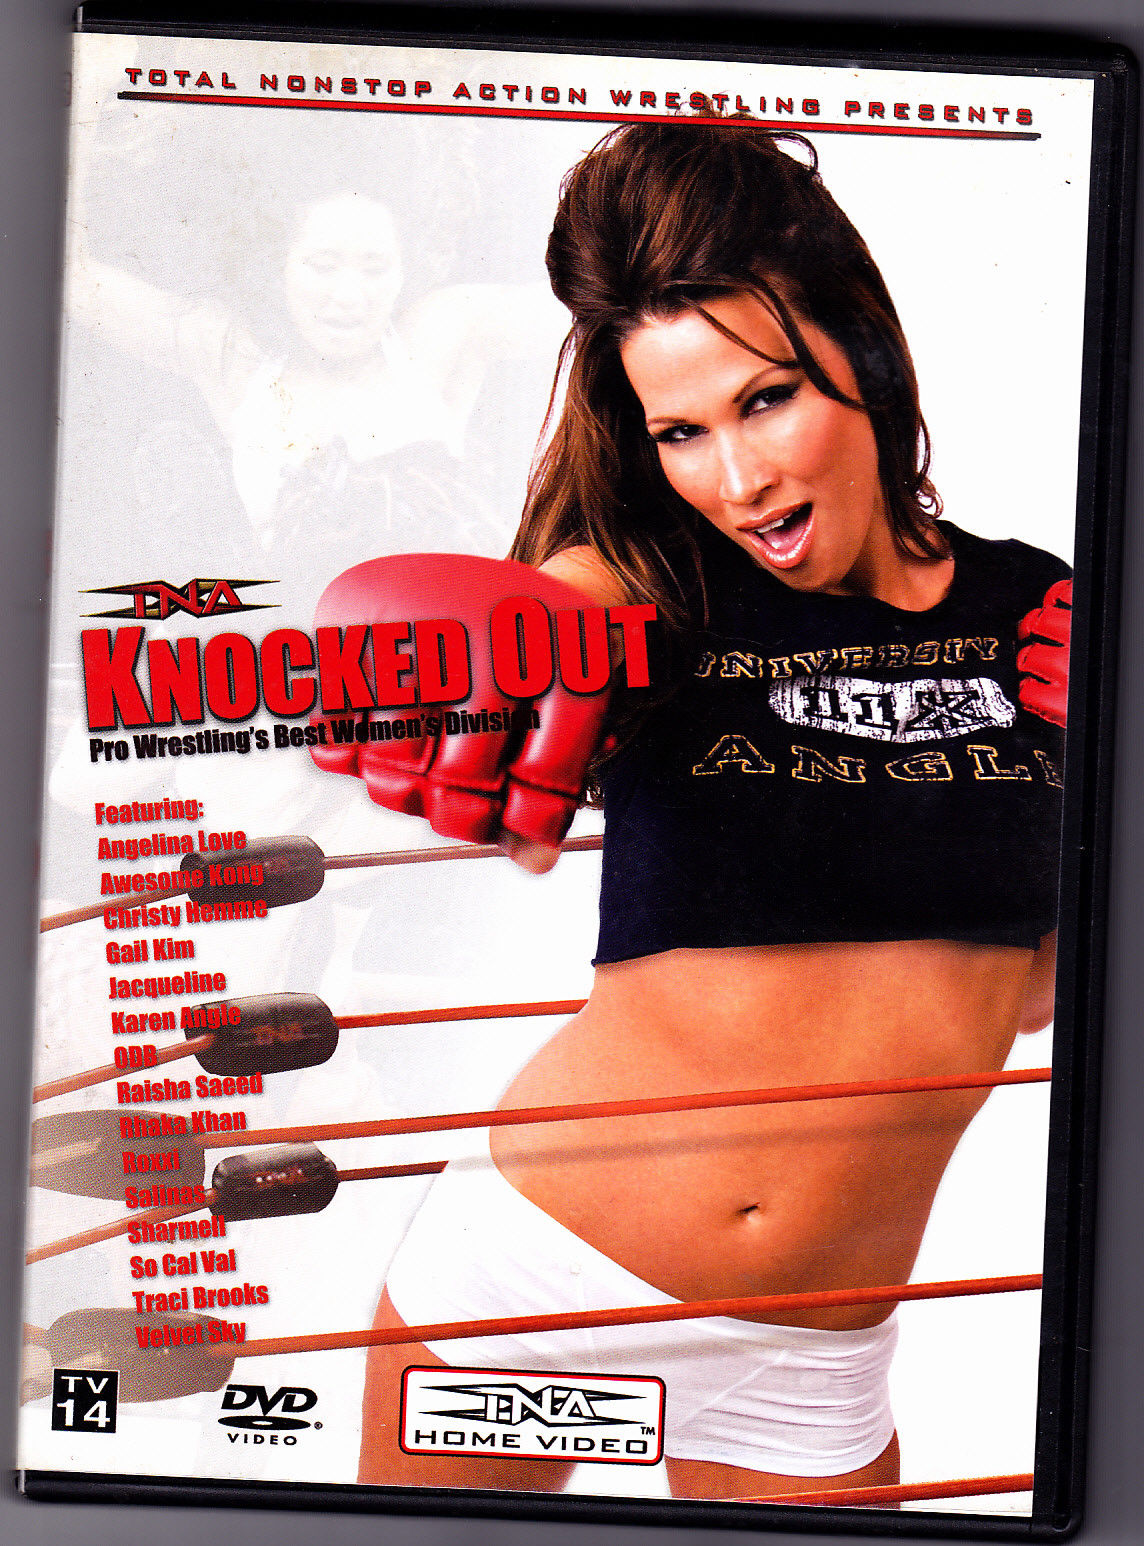 Jessica kresa odb tna wrestling opinion